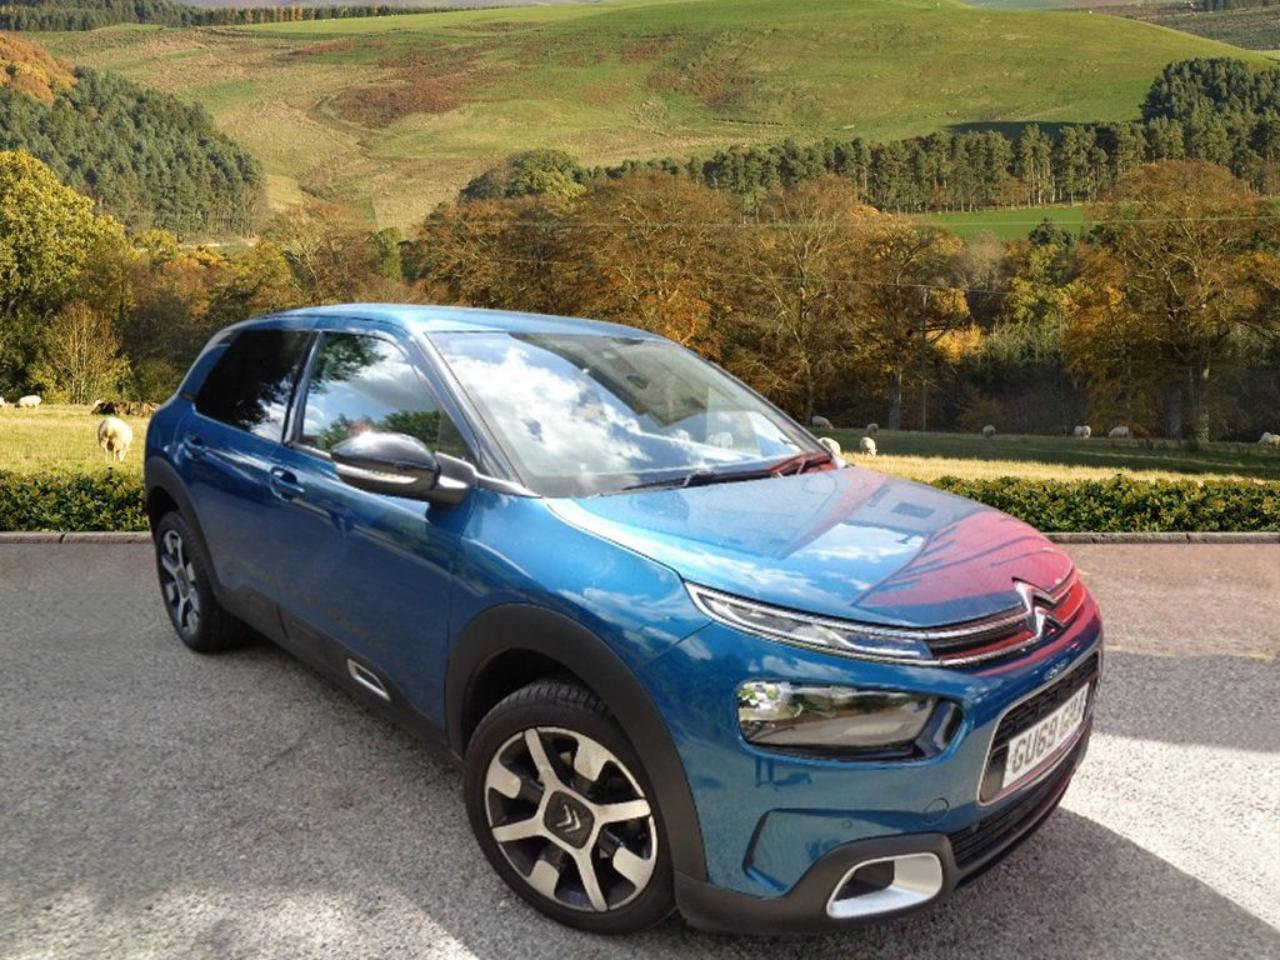 Citroën C4 Cactus 1.5 BlueHDi 120 Flair EAT6 5dr